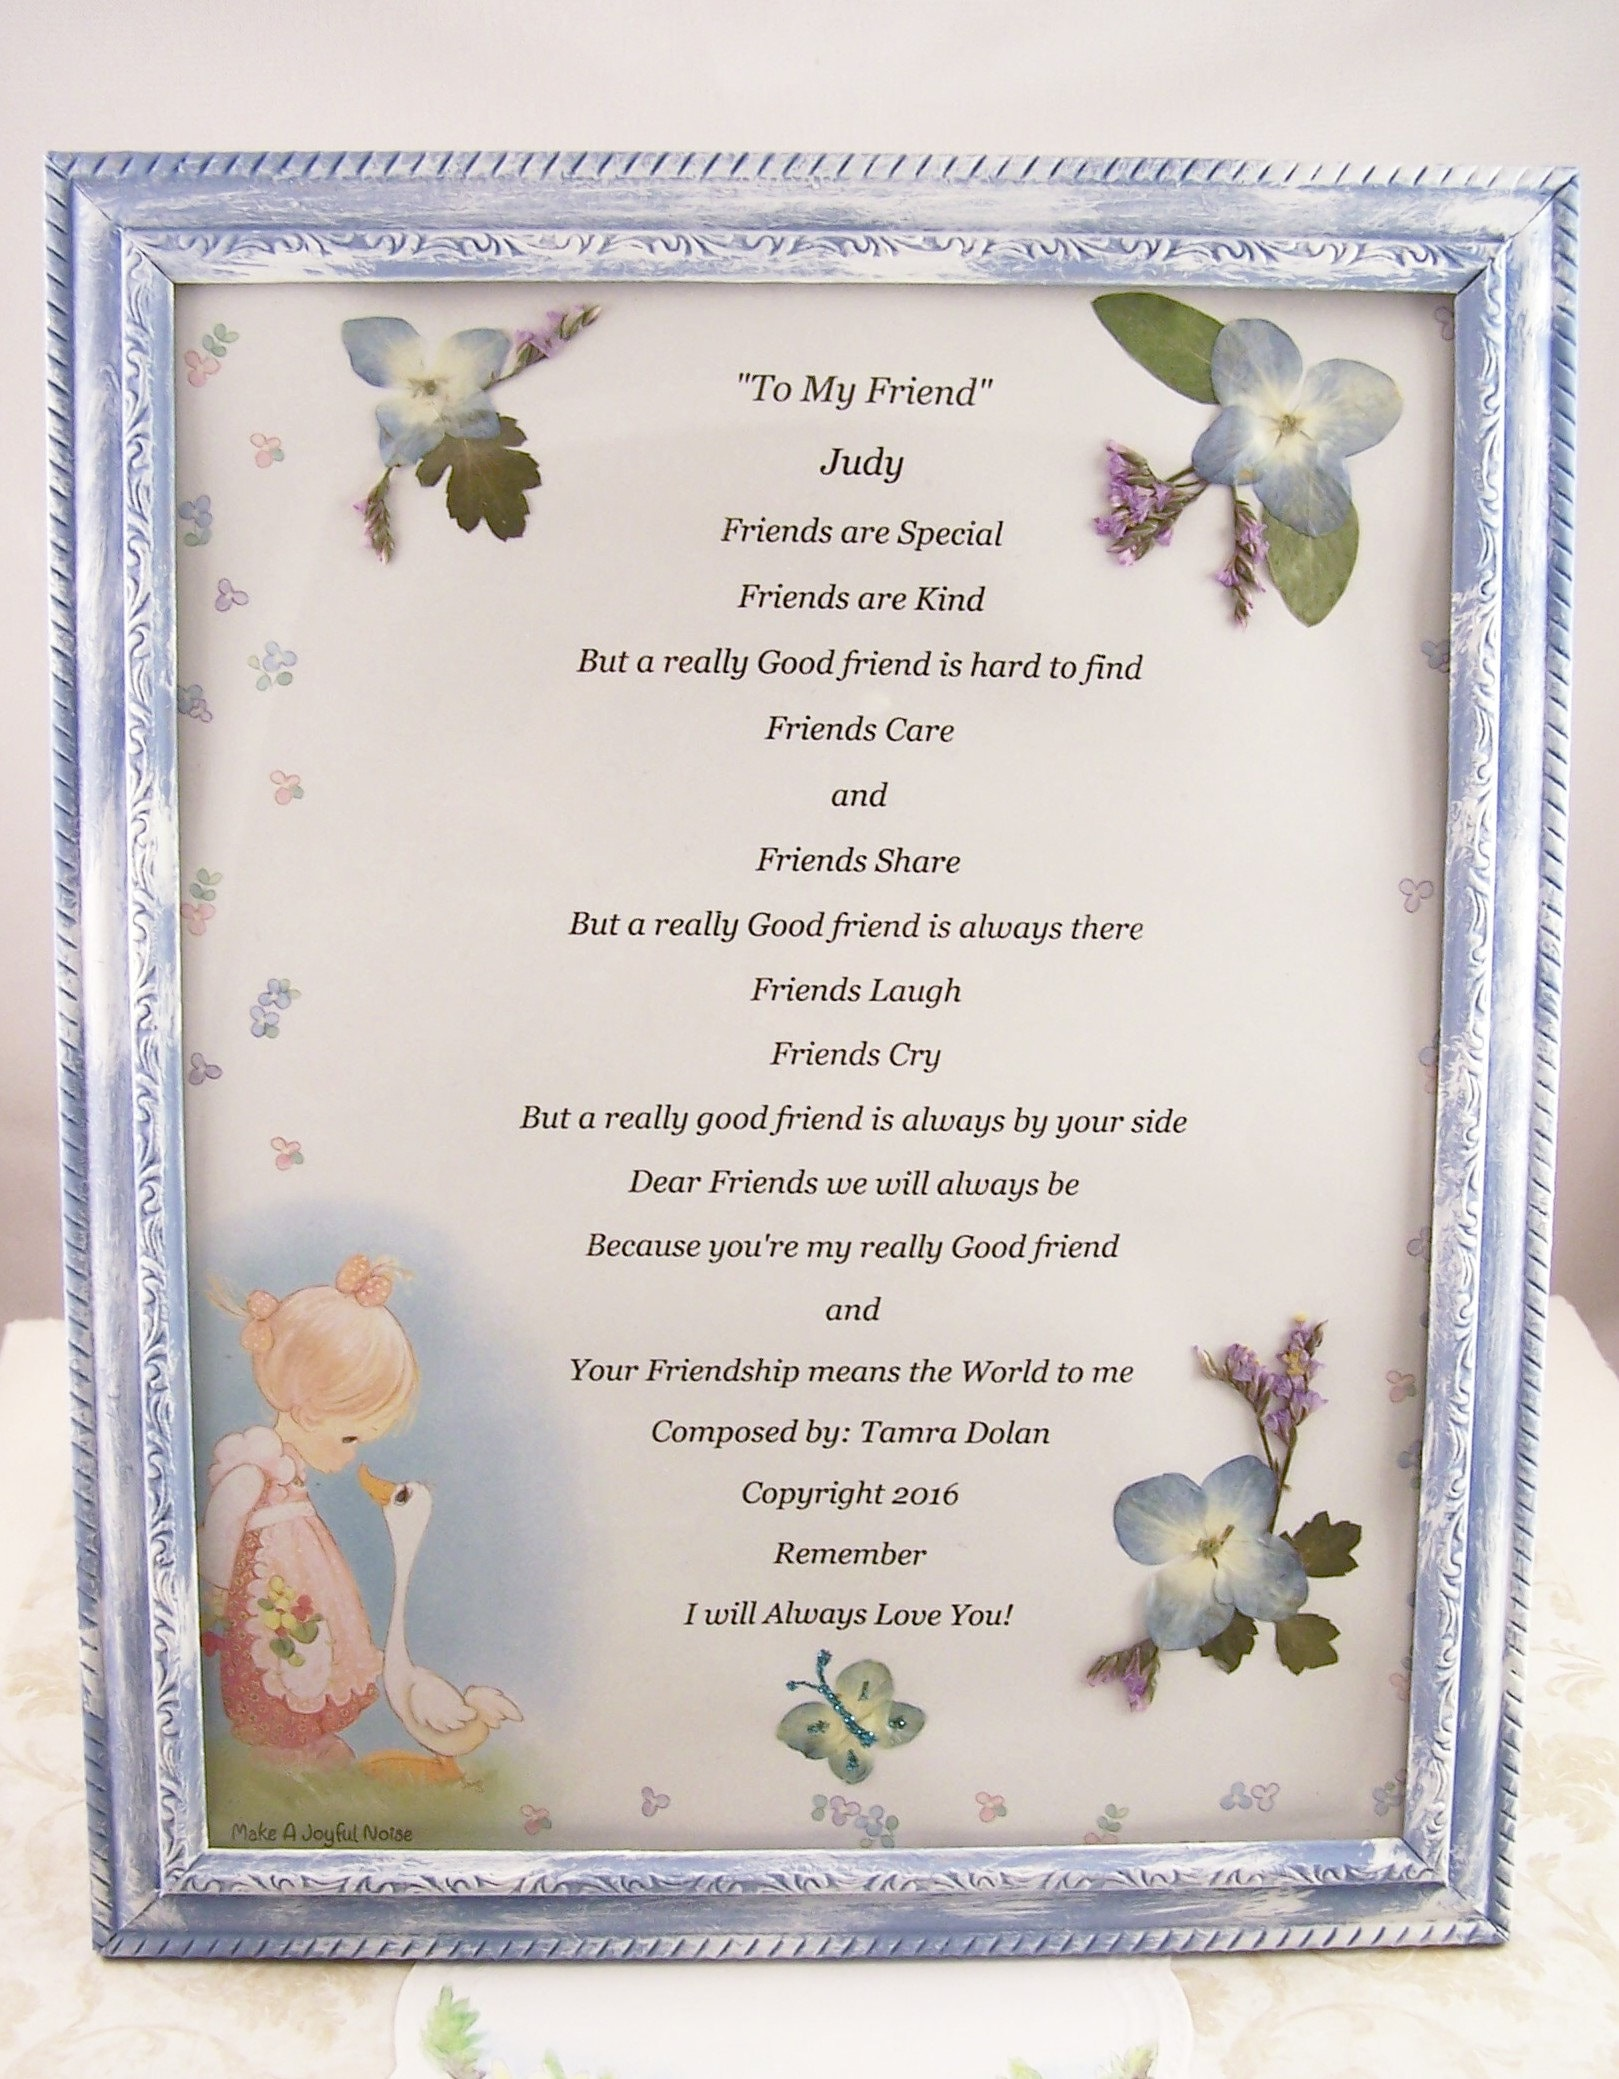 Personalized Gifts For Friends Frames Gift Best Friend Poem Women Men Birthday Her